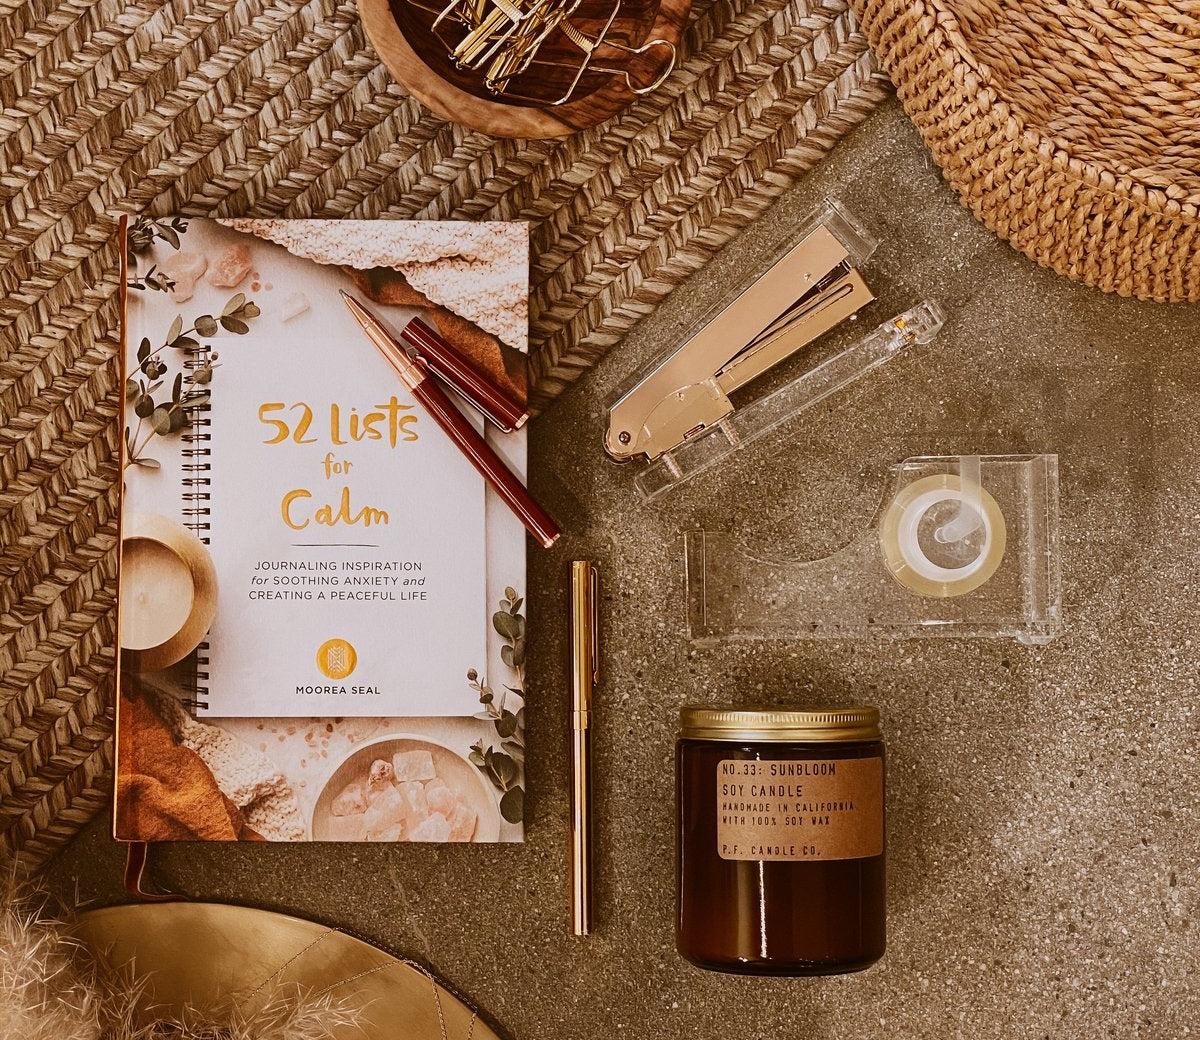 Moorea Seal calm package: candle, book (52 Lists for Calm), pens, jewellery, tape and a stapler